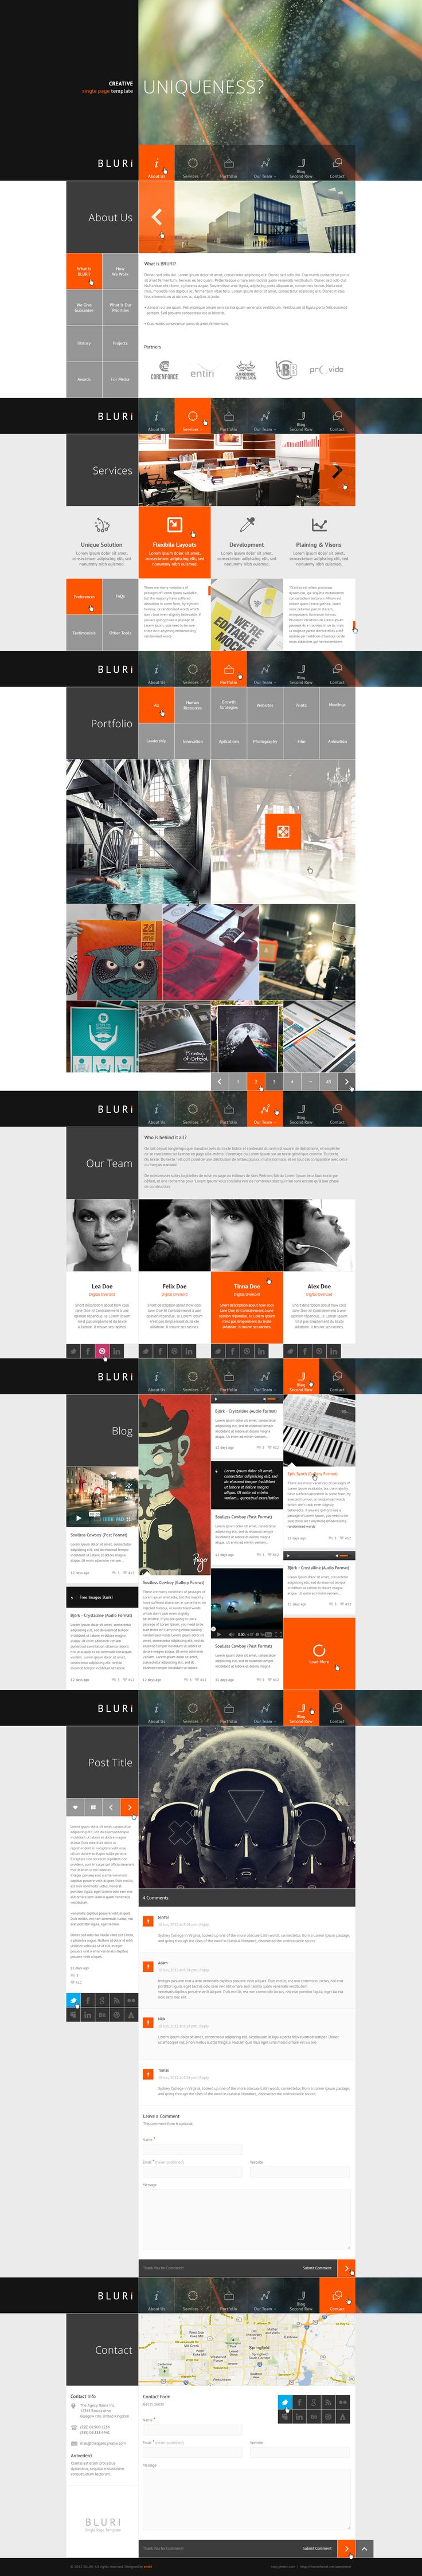 http://themeforest.net/item/bluri-single-page-template/3882654?WT.ac=category_thumb.seg_1=category_thumb.z_author=themebazaar